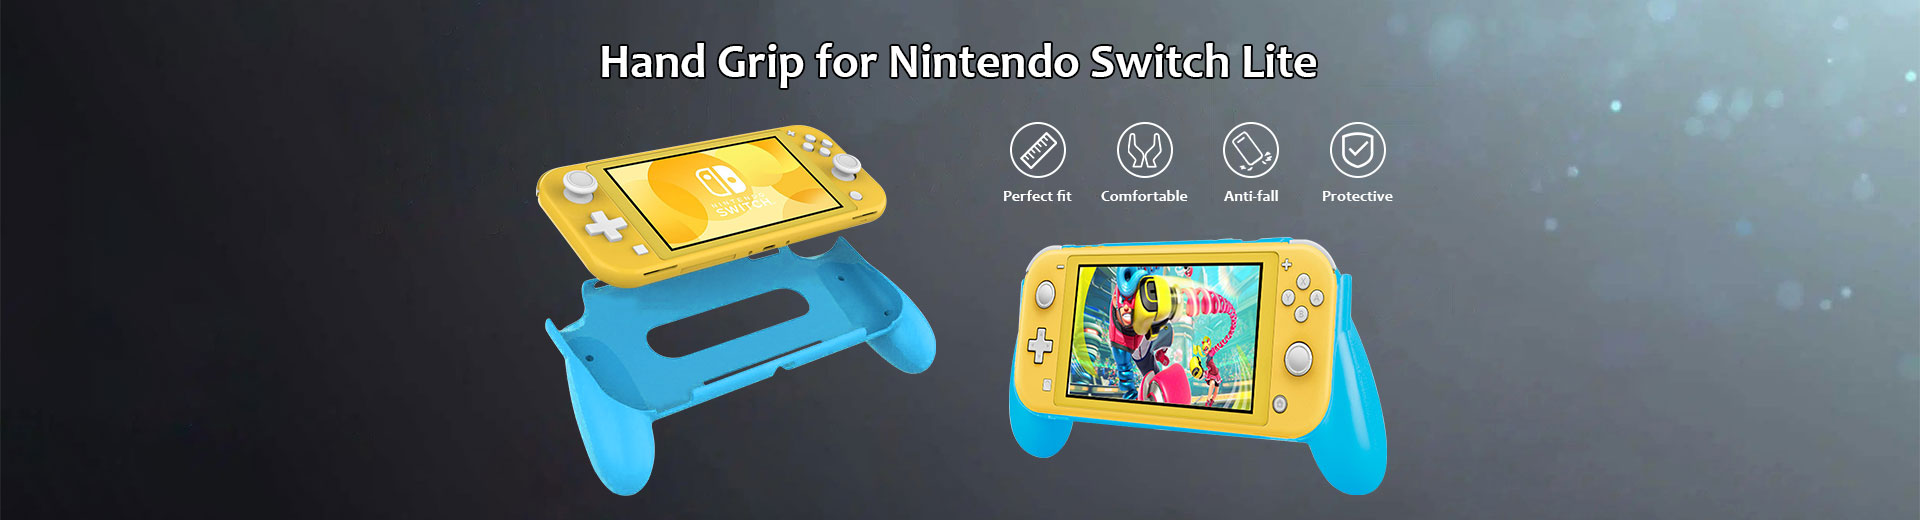 Hand Grip for Nintendo Switch Lite